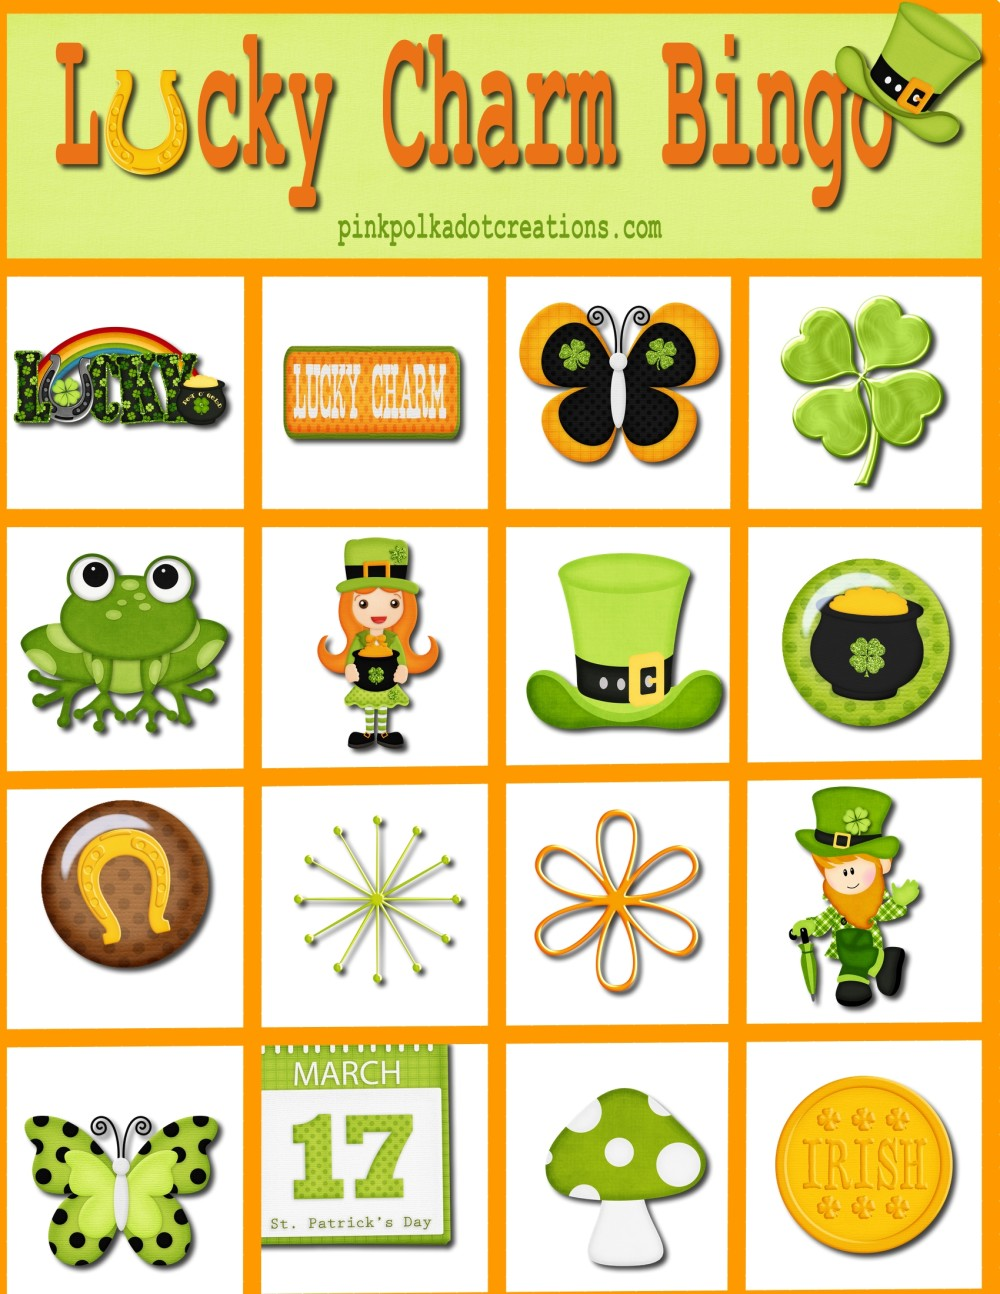 graphic relating to St Patrick's Day Bingo Printable titled Privileged Appeal Bingo Sport - Red Polka Dot Creations